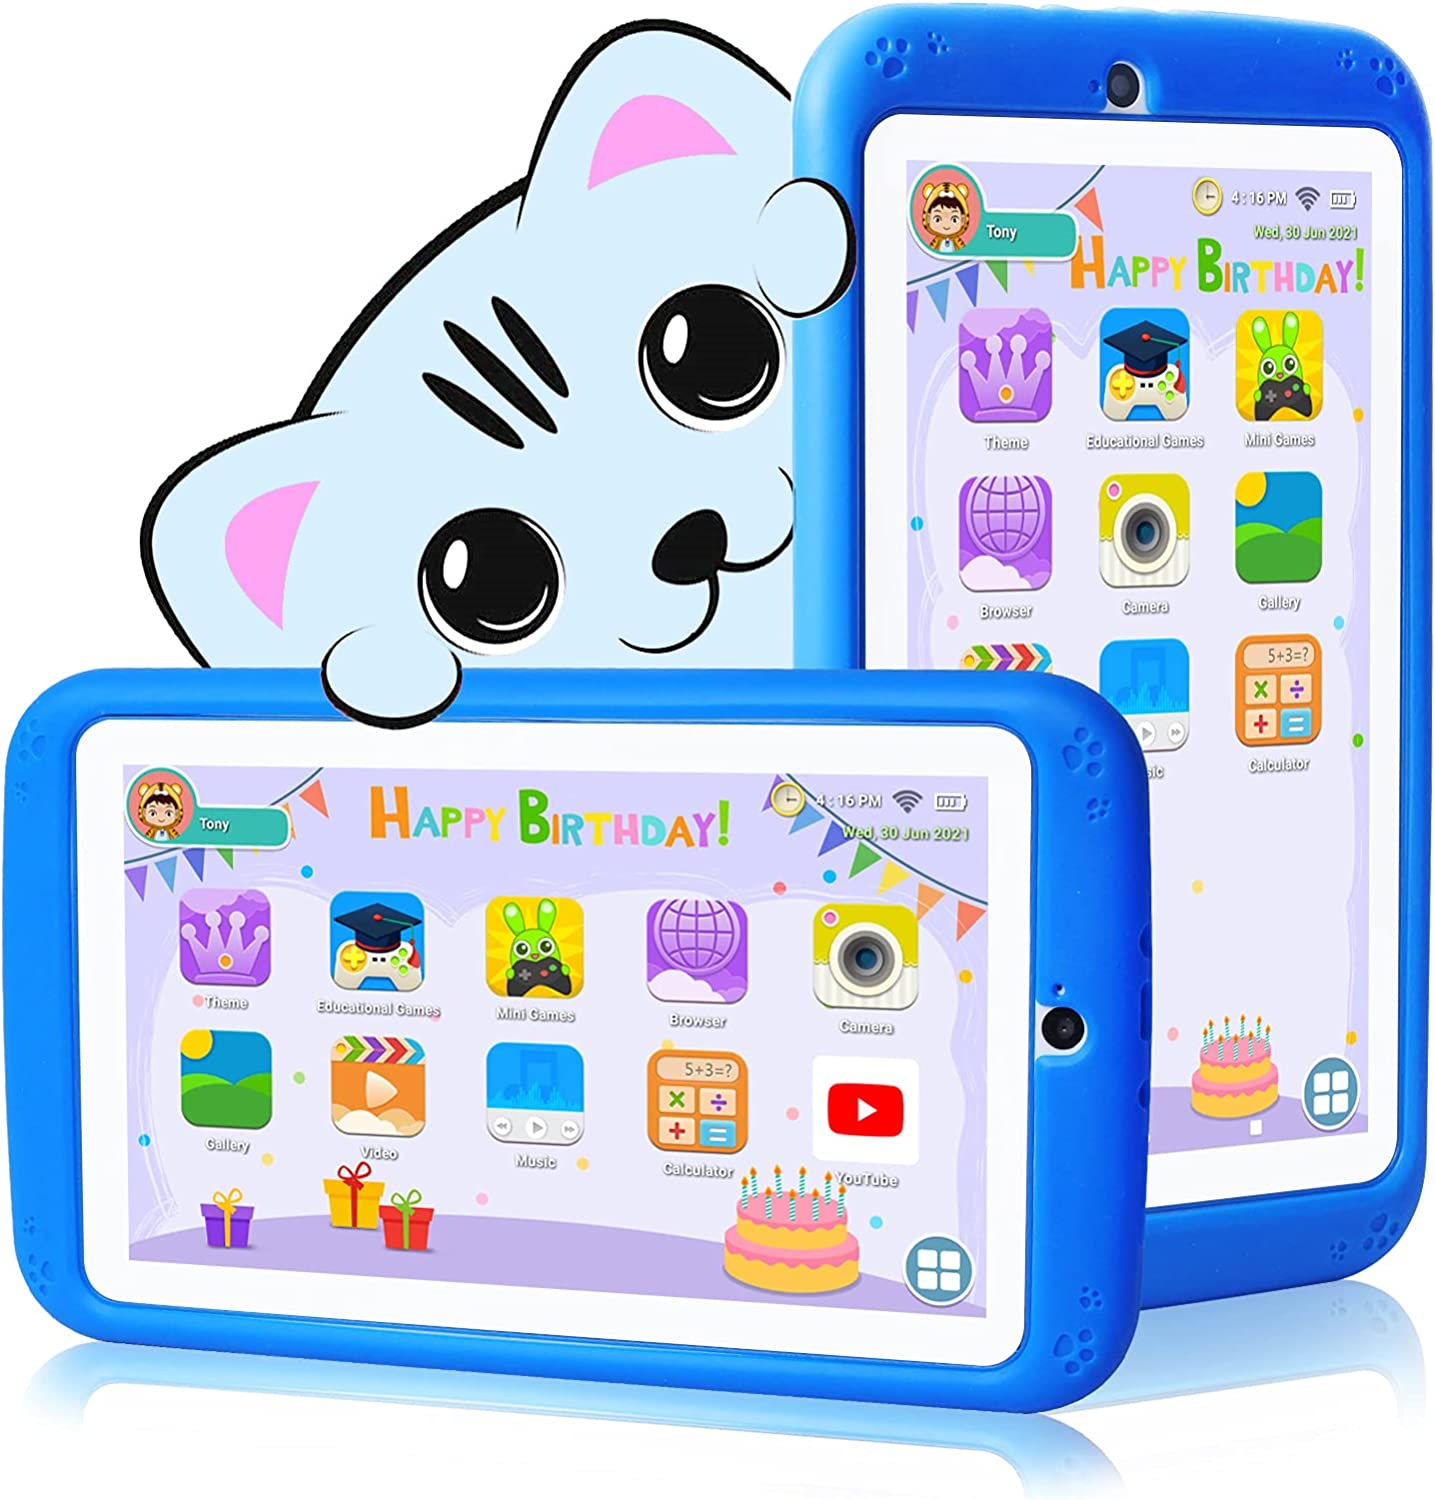 Kids Tablet 7 inch Android 2021new shipping free 10.0 - Qu Case Cheap sale for with